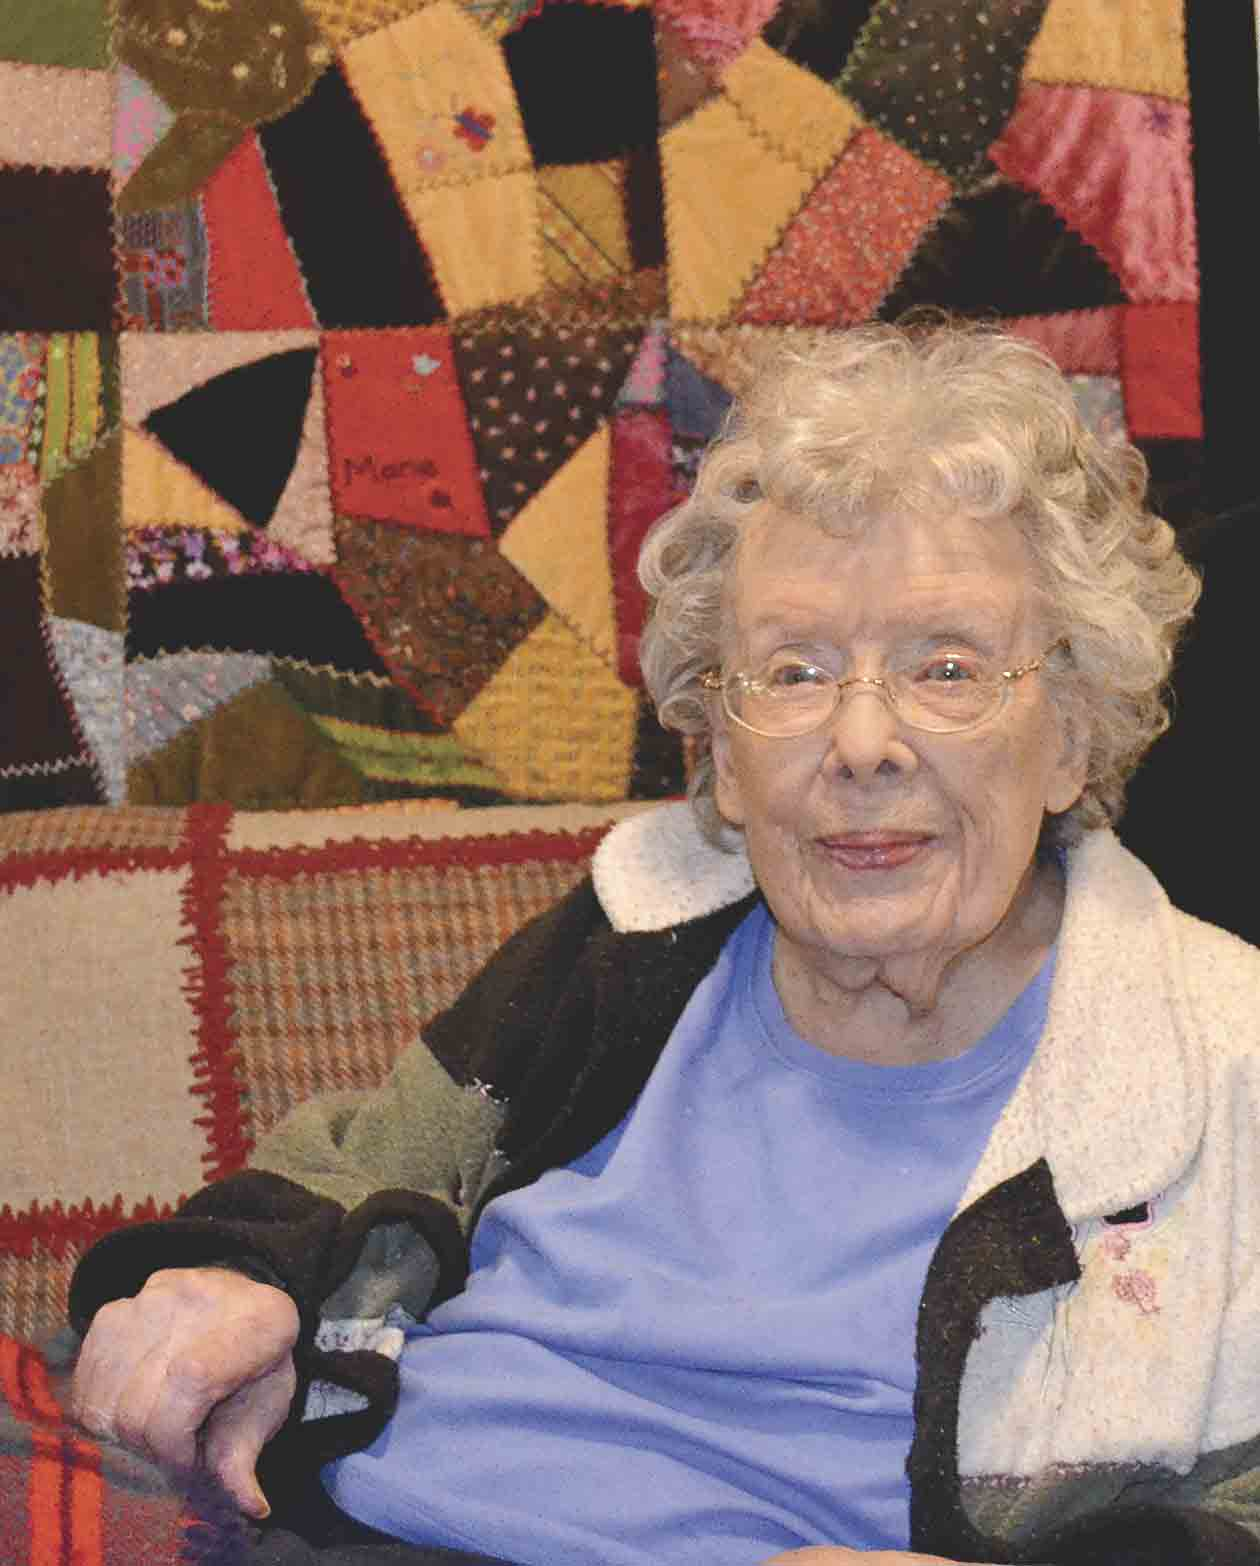 "Priscilla and her husband, Ernest ""Bud"" Hilgemann, moved to Elgin and bought a home in 1961.  As she approaches her 100th birthday on Nov. 17, Priscilla still resides in the same home, which is decorated with the many colorful quilts (such as the one hanging behind..."